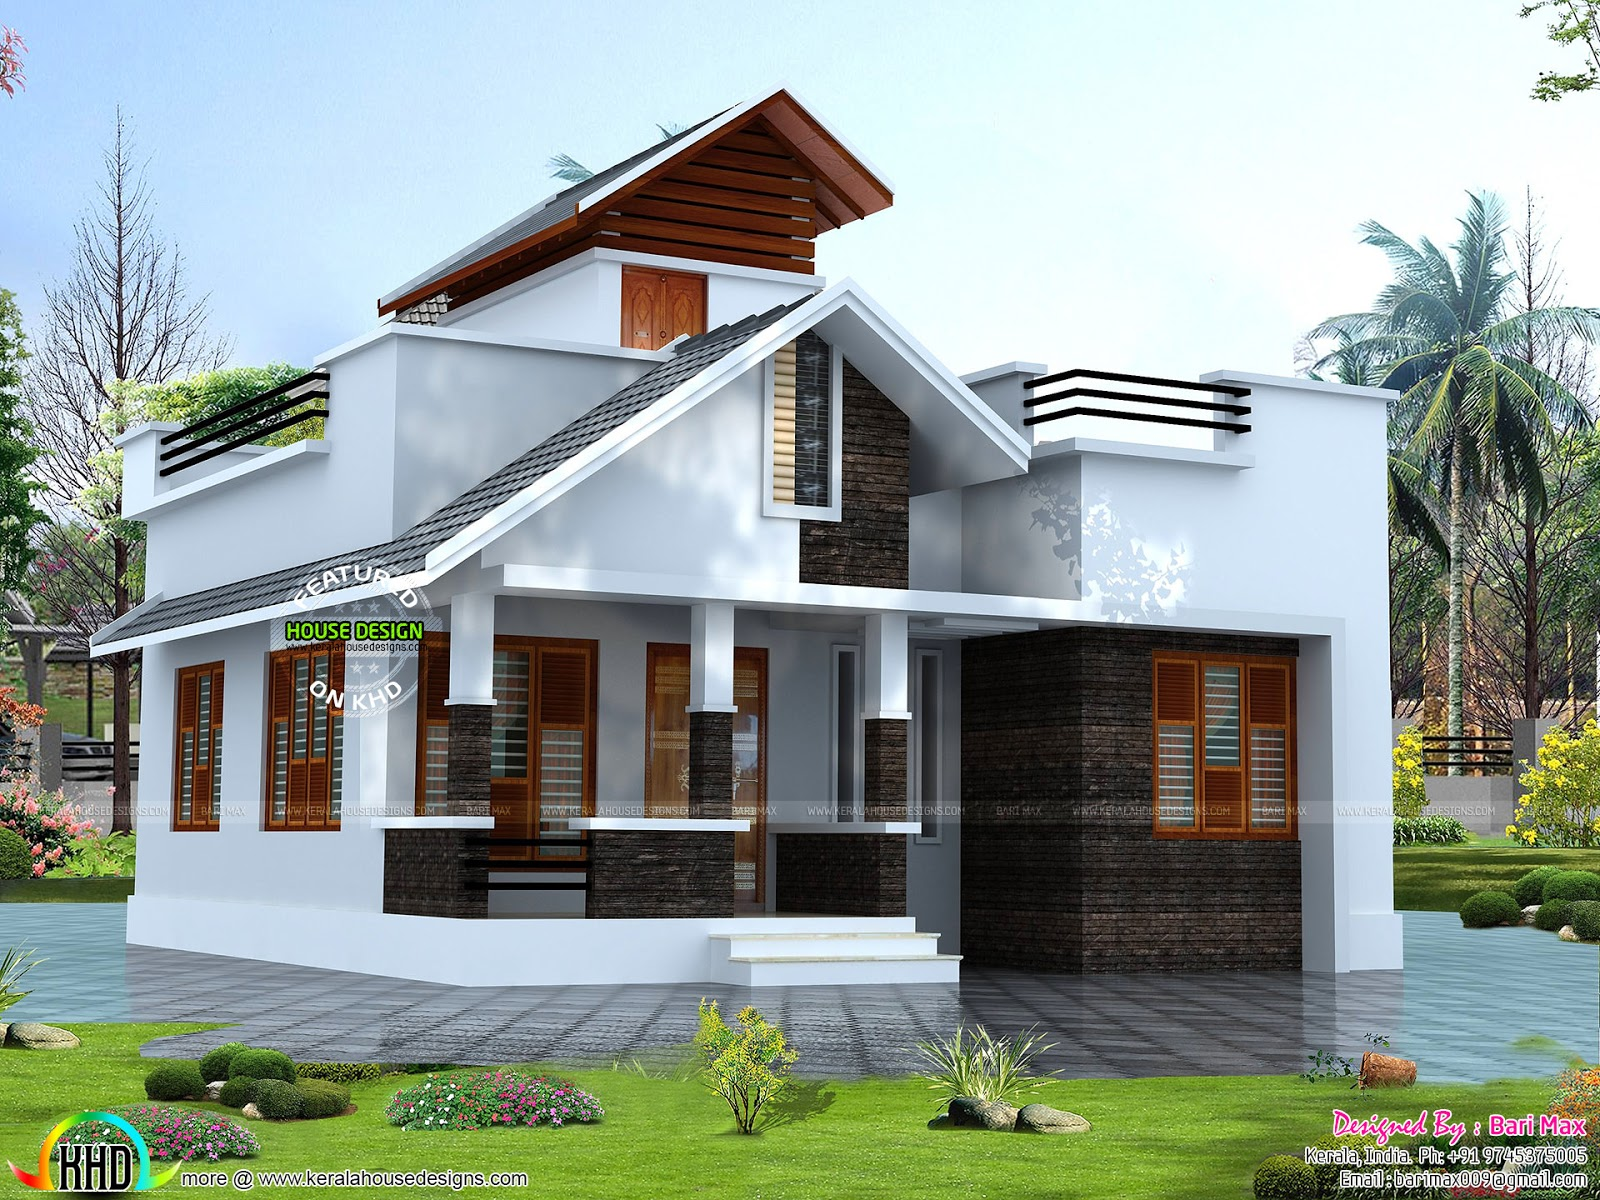 Rs 12 lakh house architecture kerala home design Arch design indian home plans